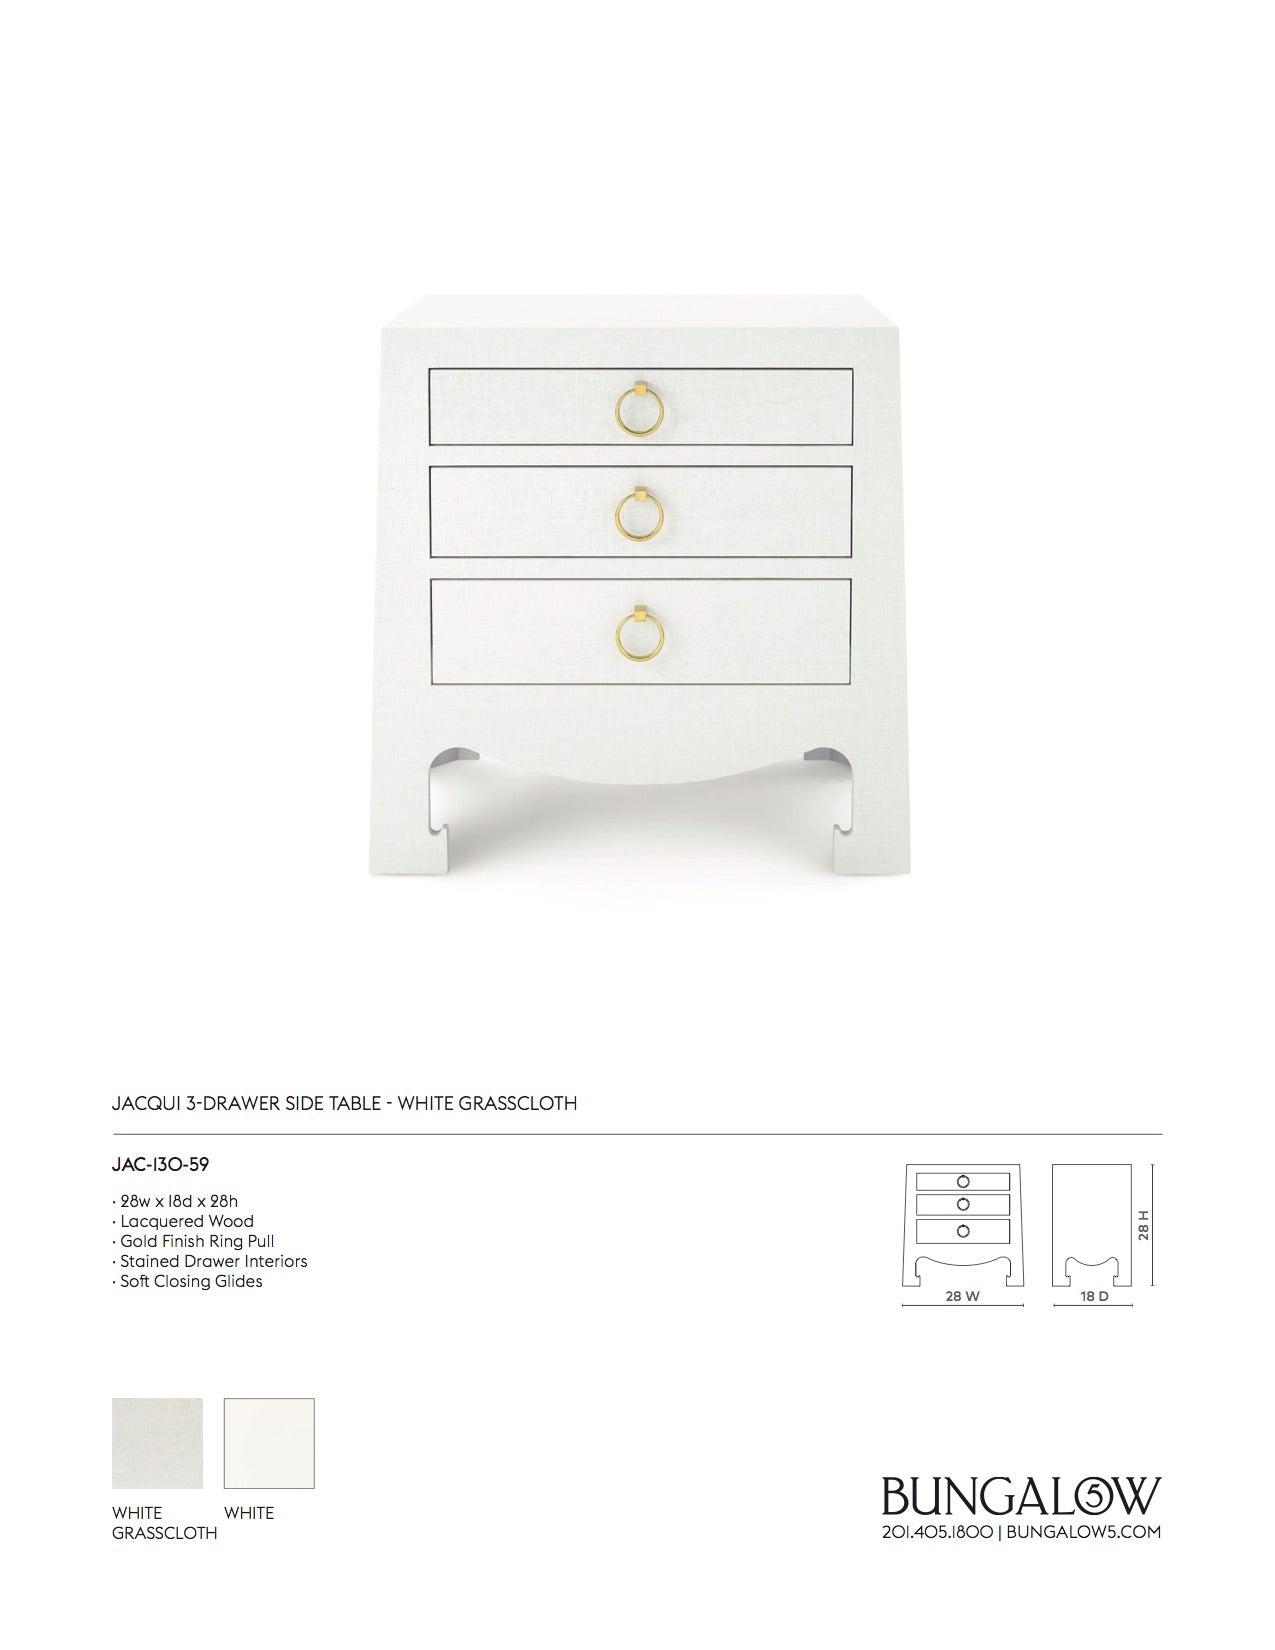 Bungalow 5 Jacqui 3 Drawer Side Table White Grasscloth Tearsheet